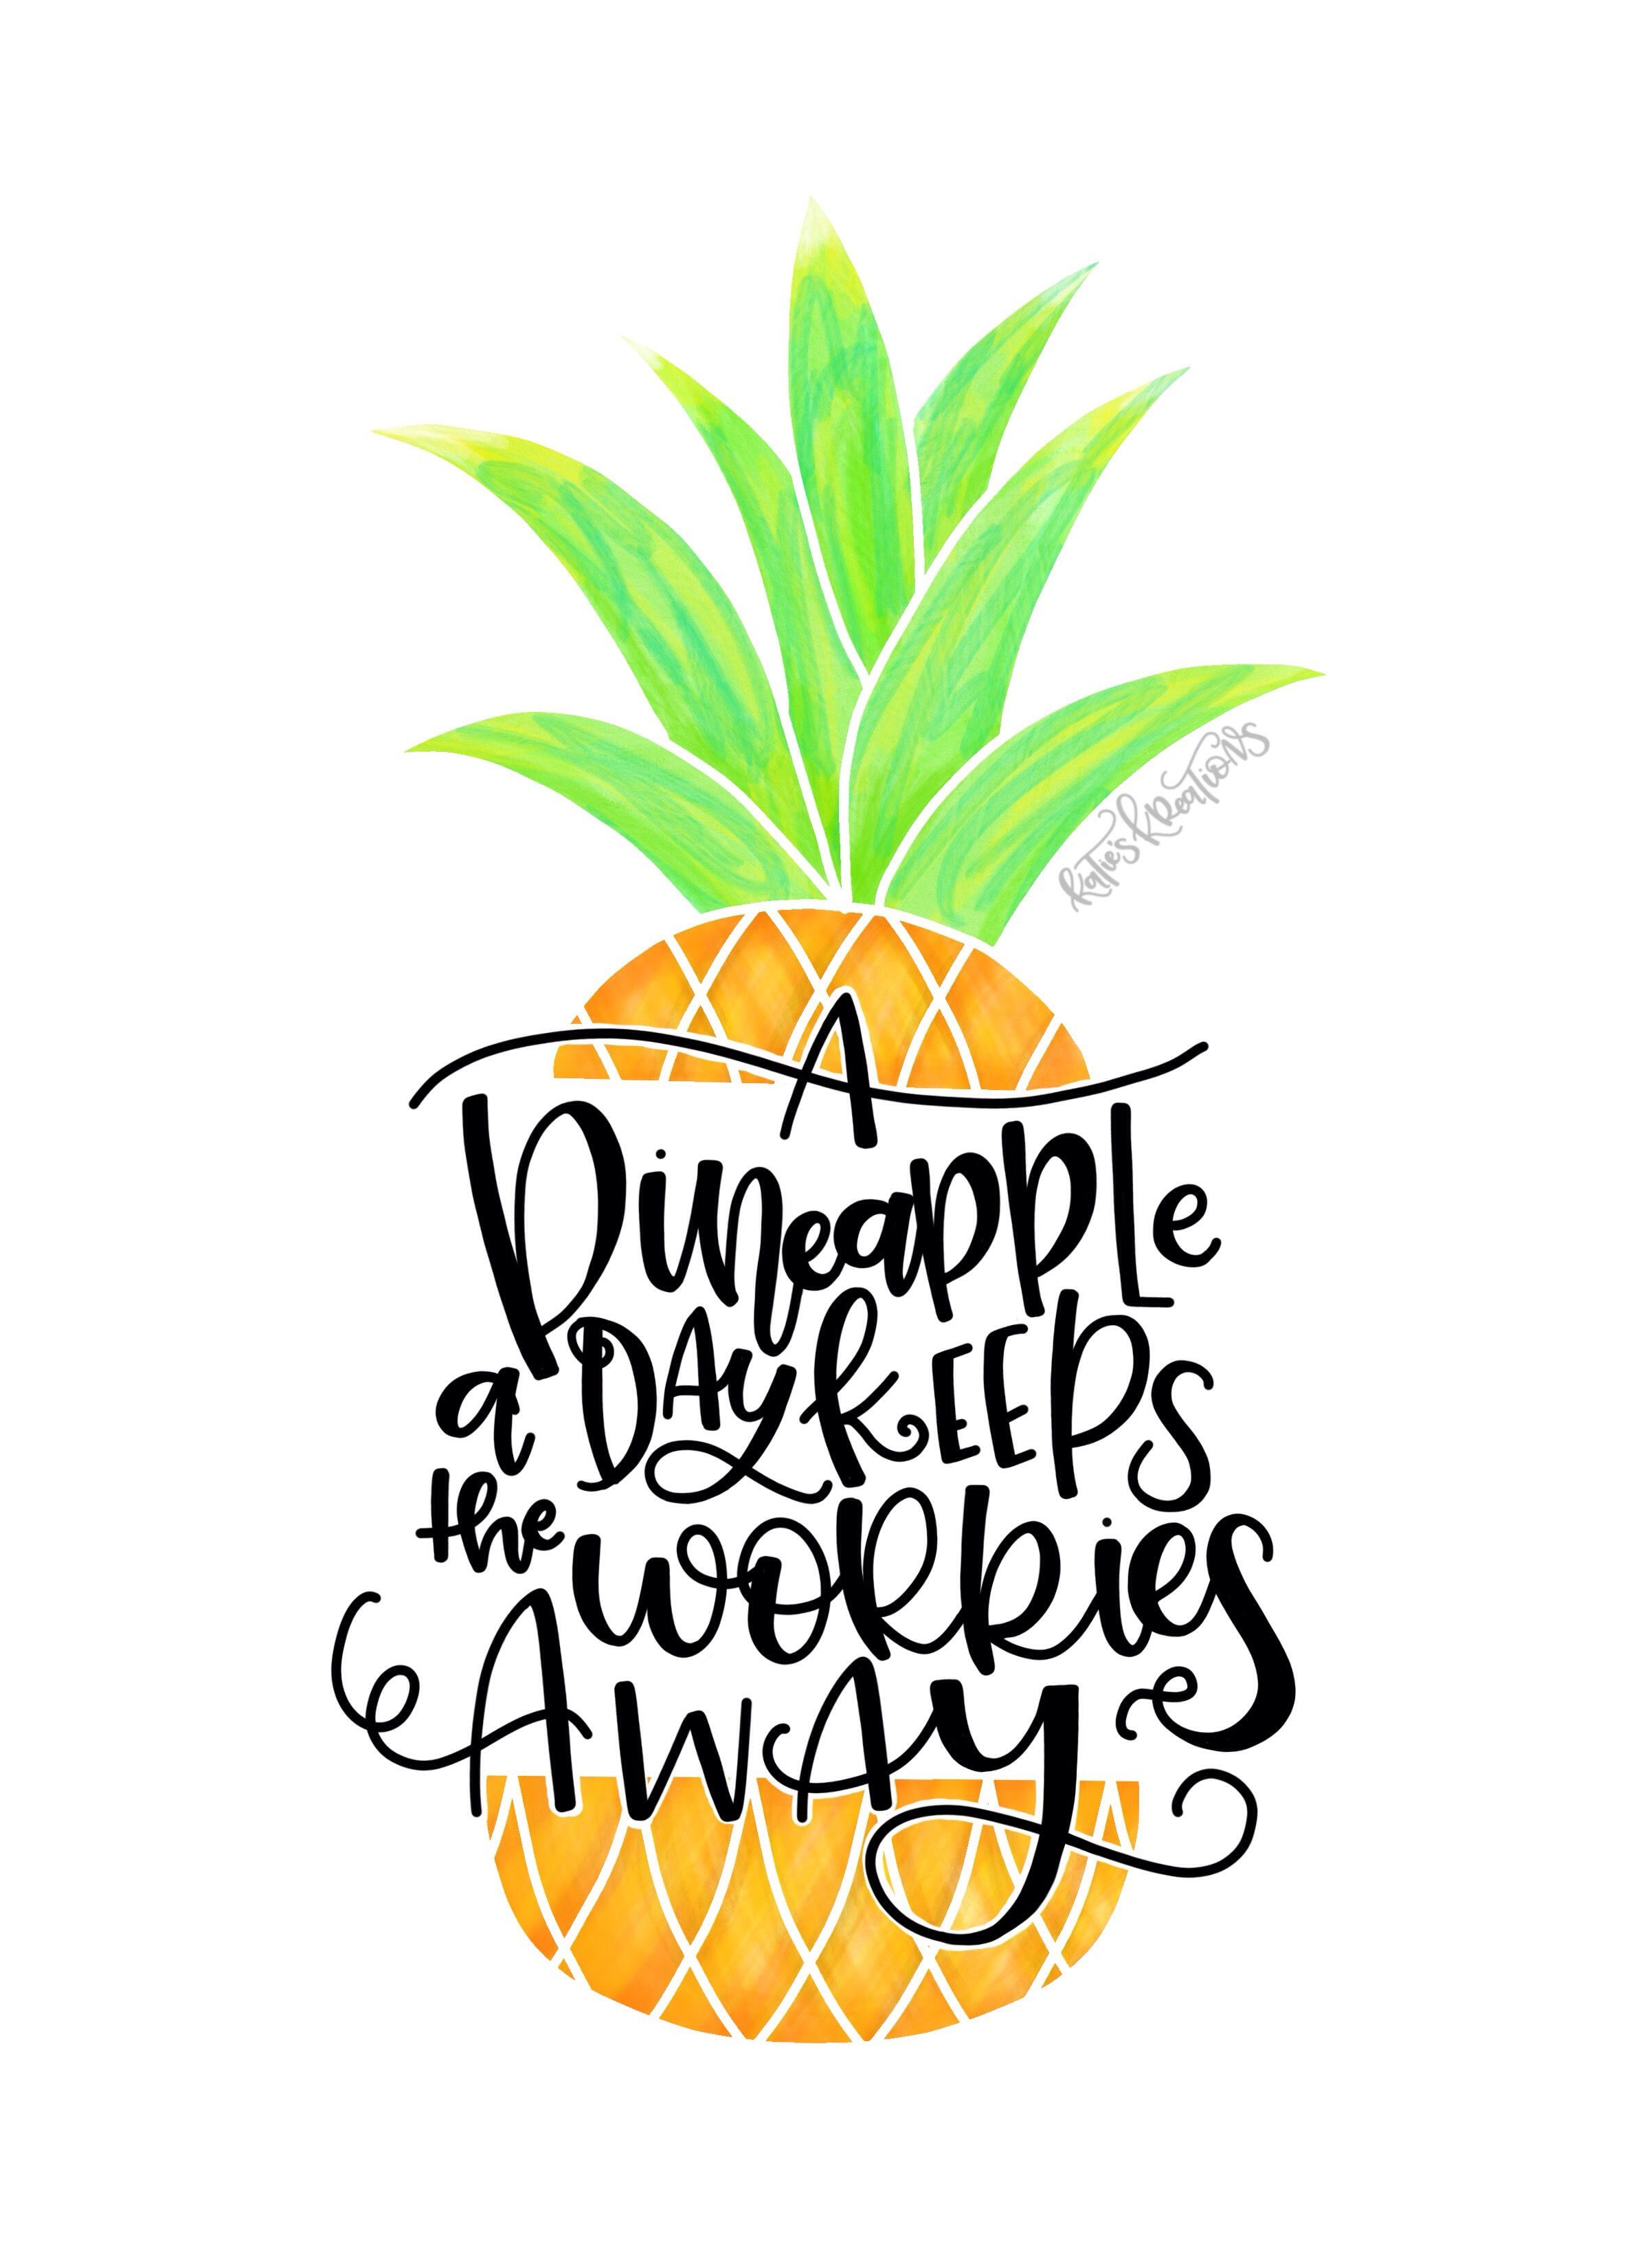 A Pineapple A Day Keeps The Worries Away Pineapples Pineapple Worriesaway Relax Cansonpaper Hand Lettering Brushletting Canson Digital Lettering